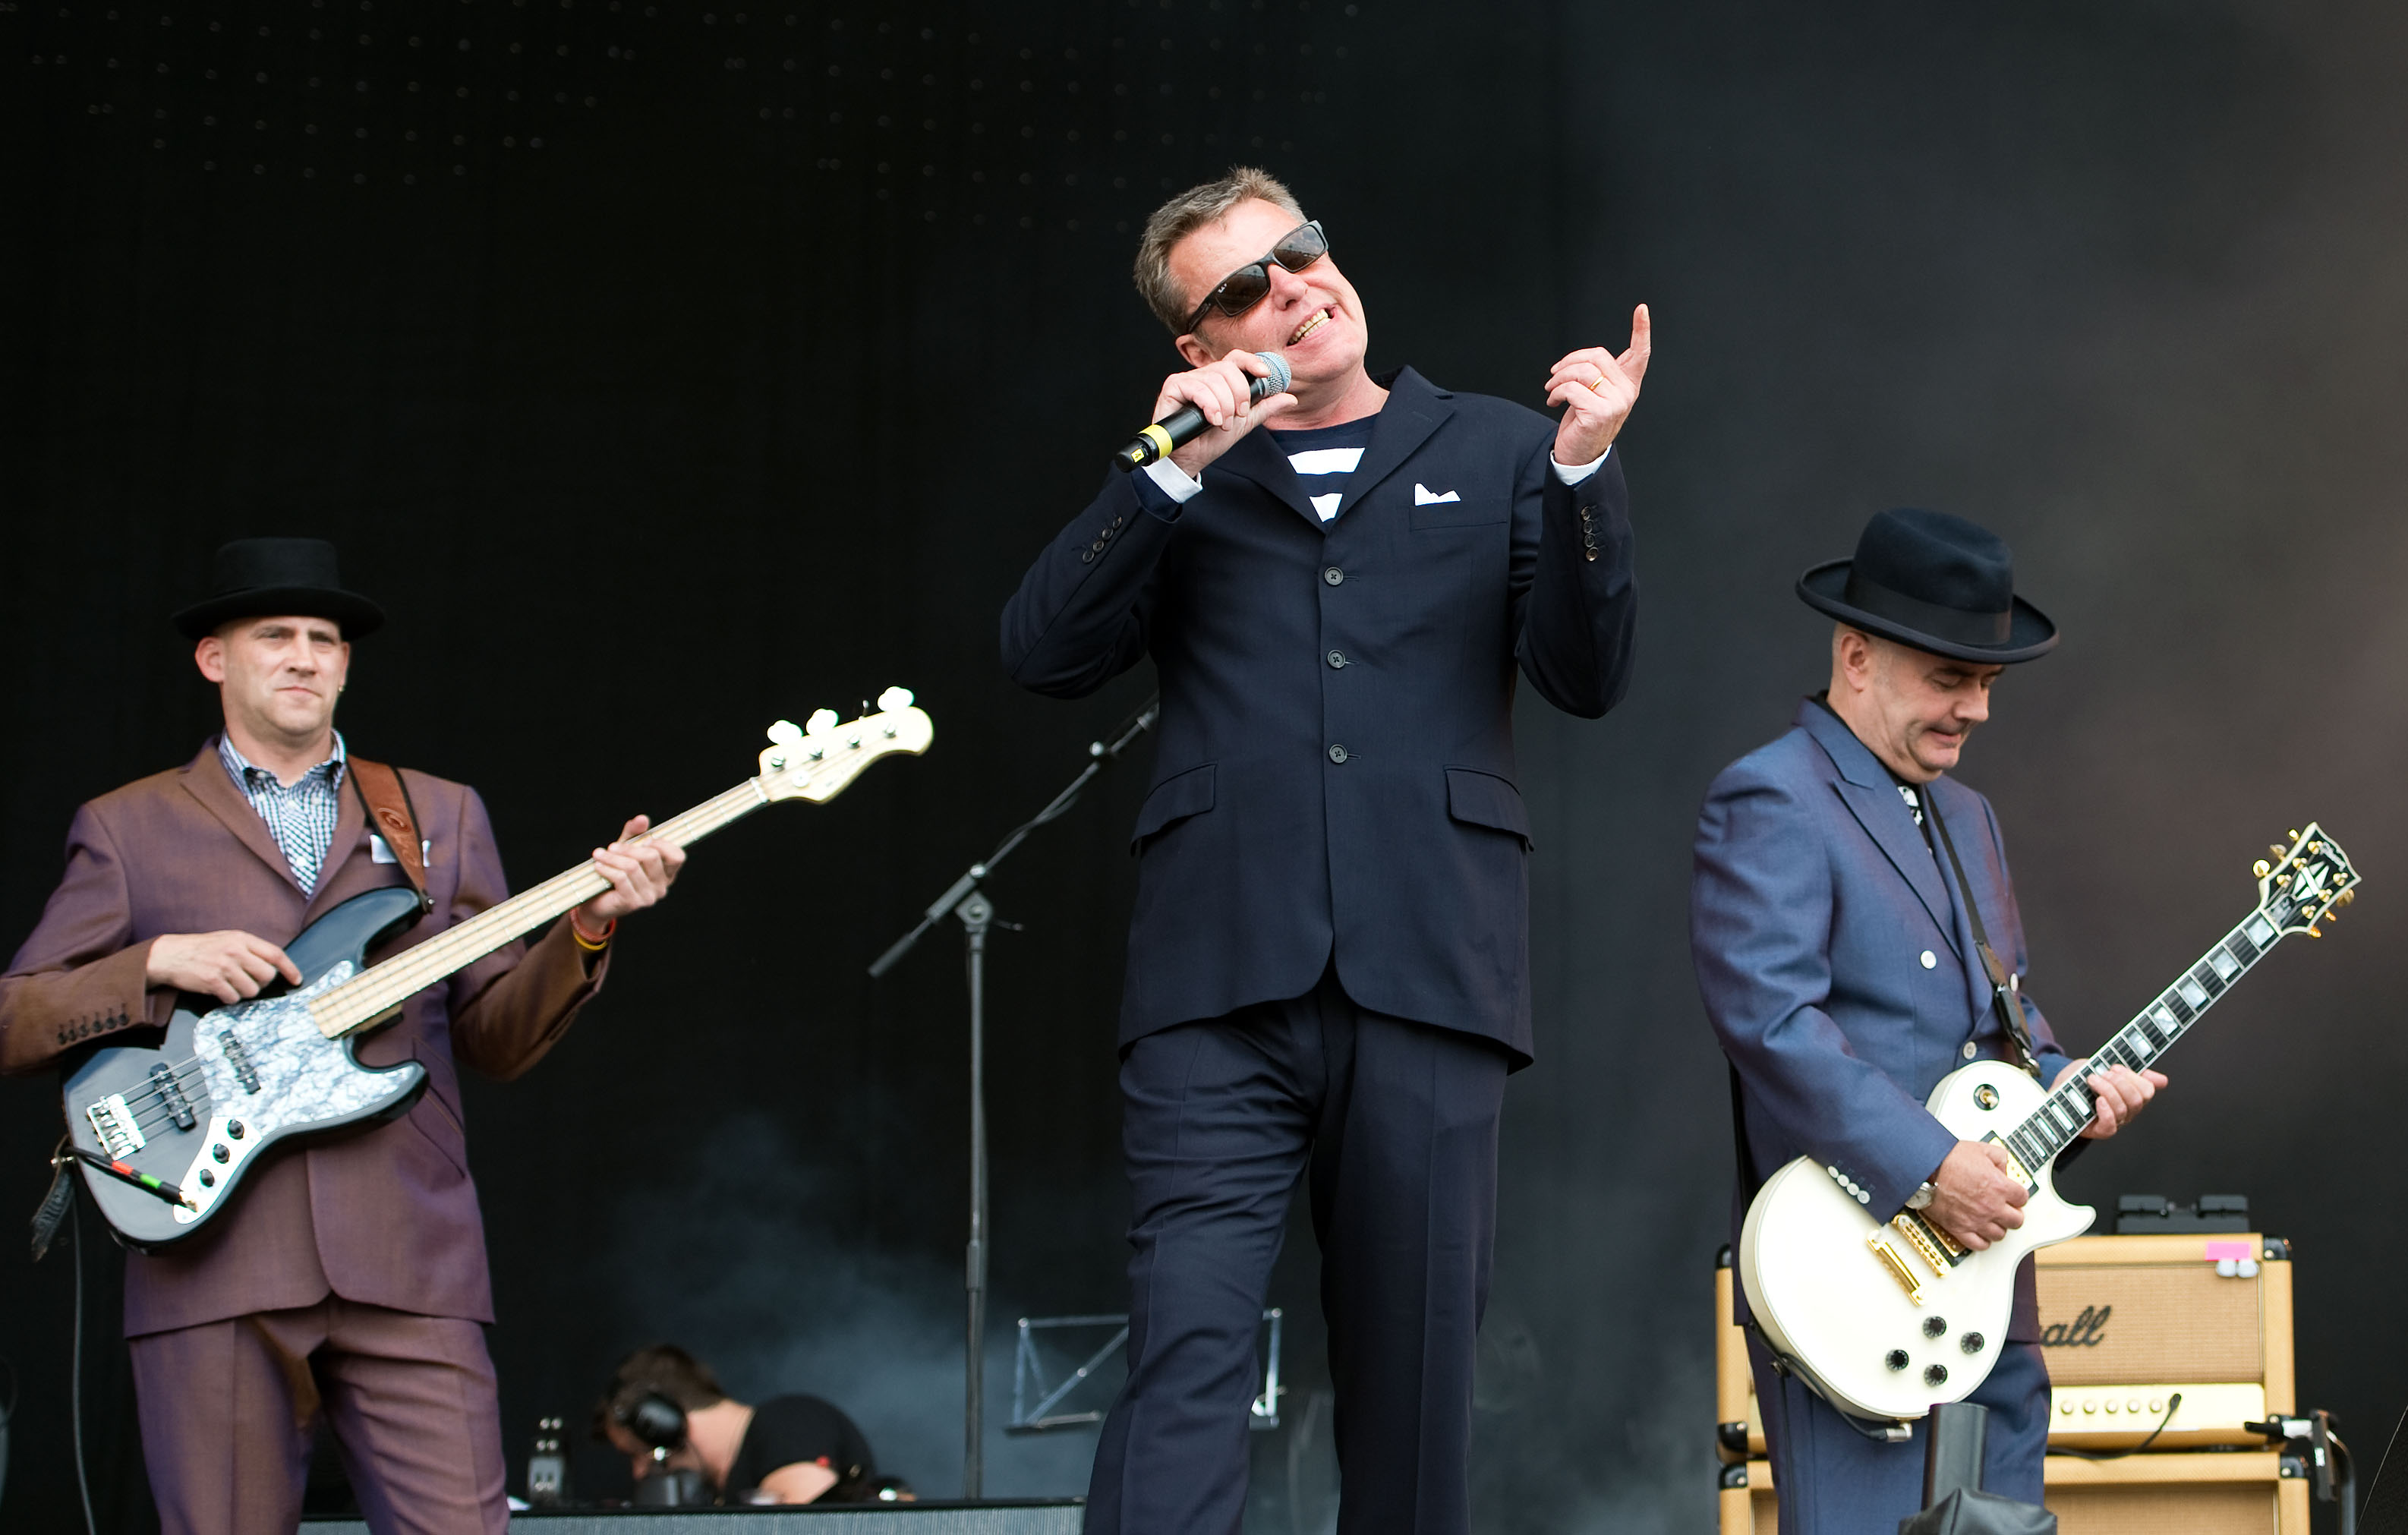 When did Madness form and which are their best-known hits as they bring in the New Year on BBC One?